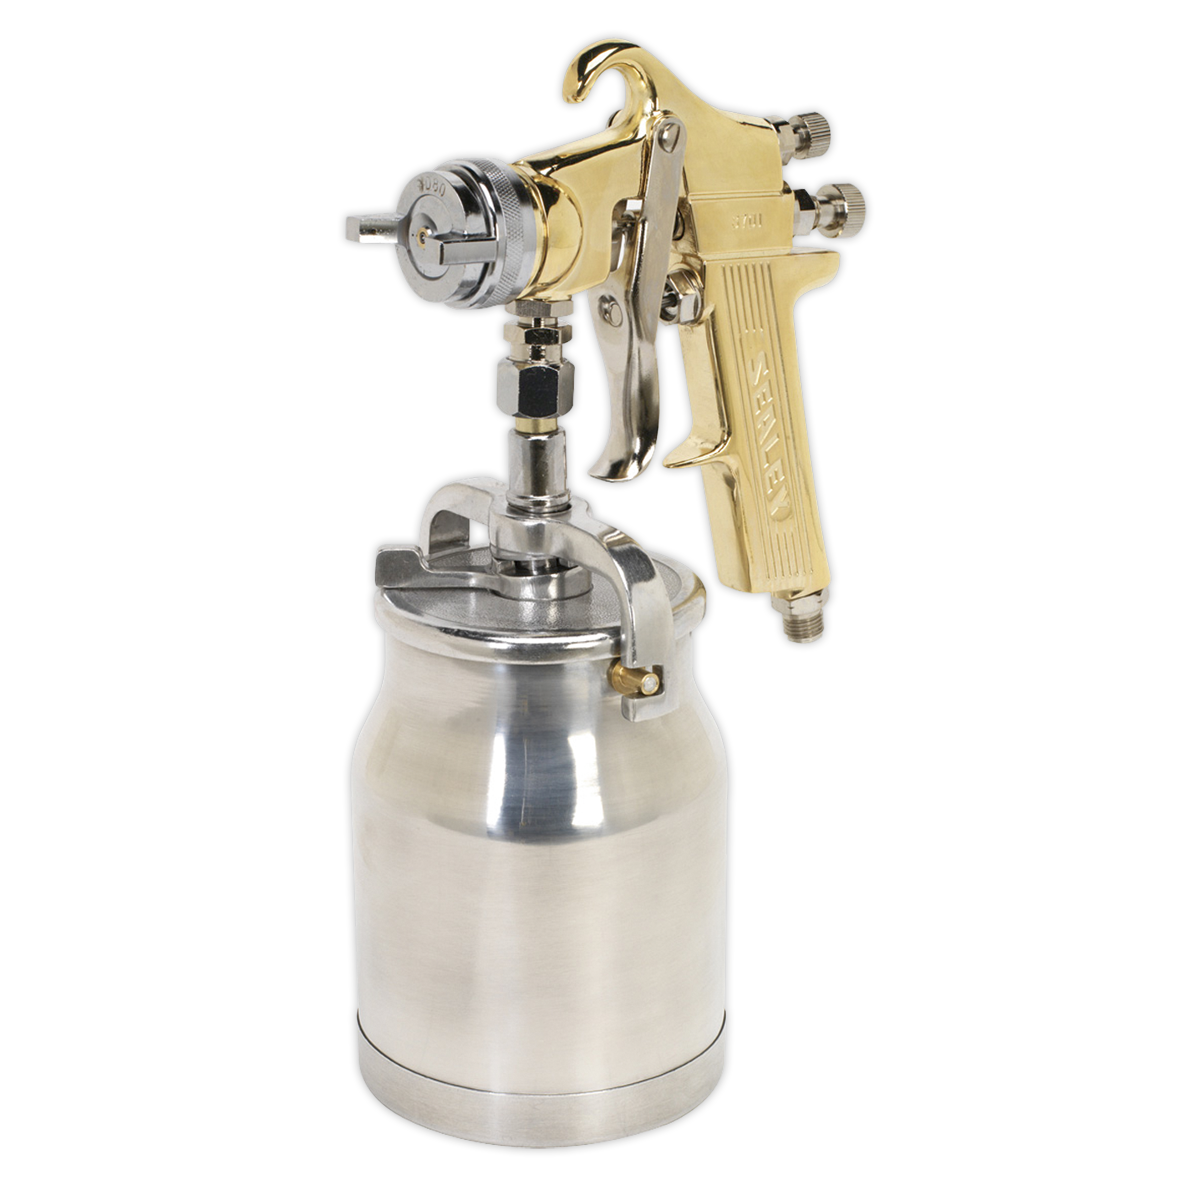 S701 Sealey Spray Gun Professional Professional Professional Suction Feed 1.8mm Set-Up b15ef5